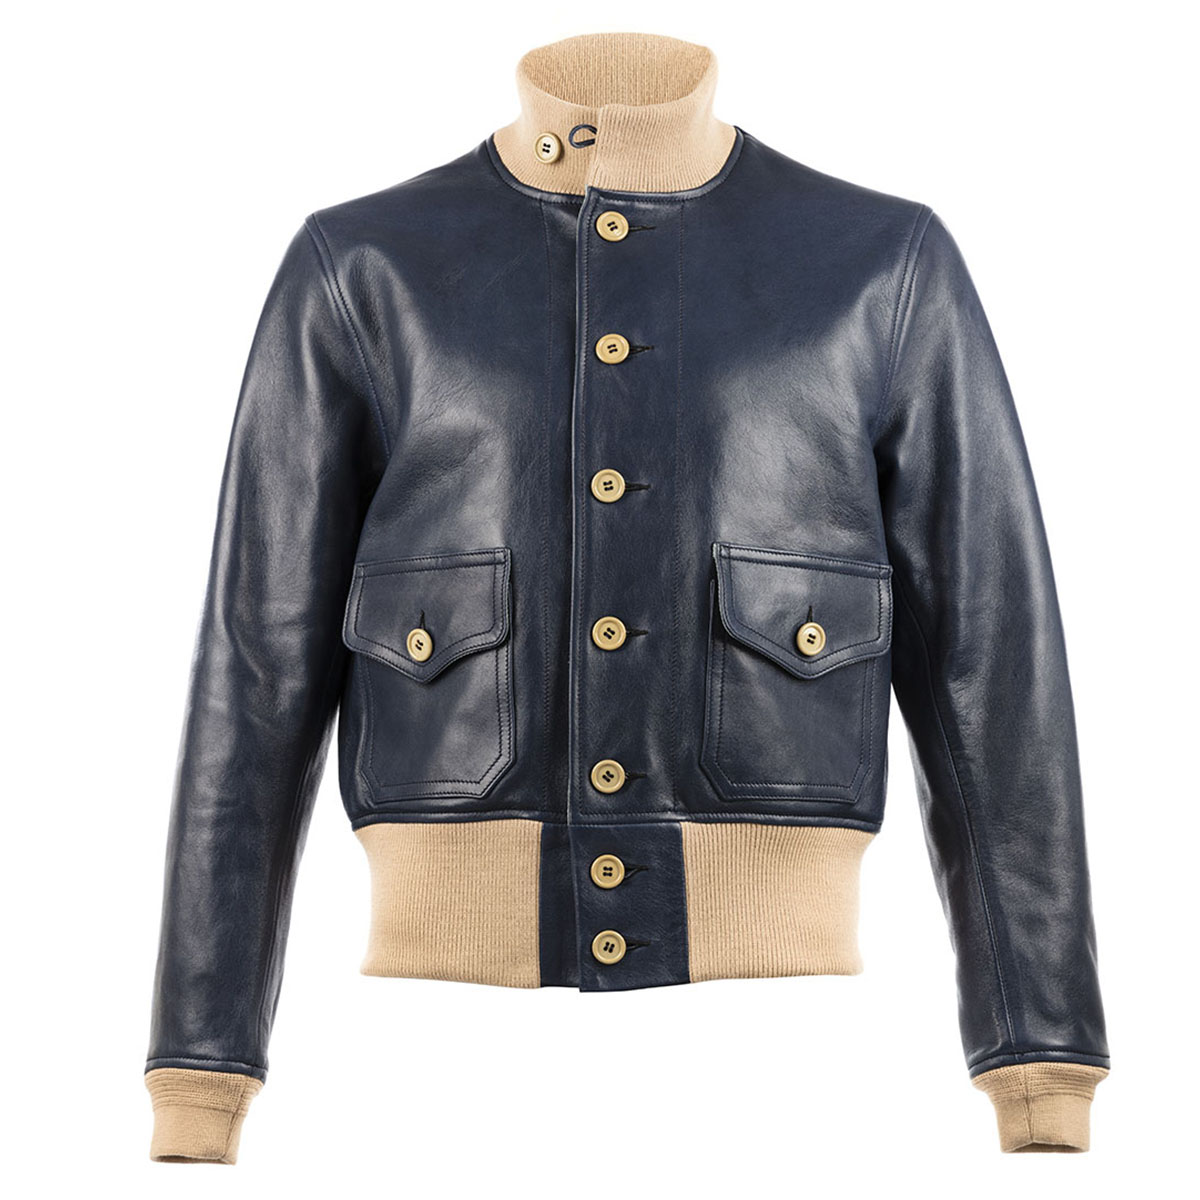 ec6d2c70bf2 Navy A1 Leather Jacket by Chapal buy at SUNDAY30.COM